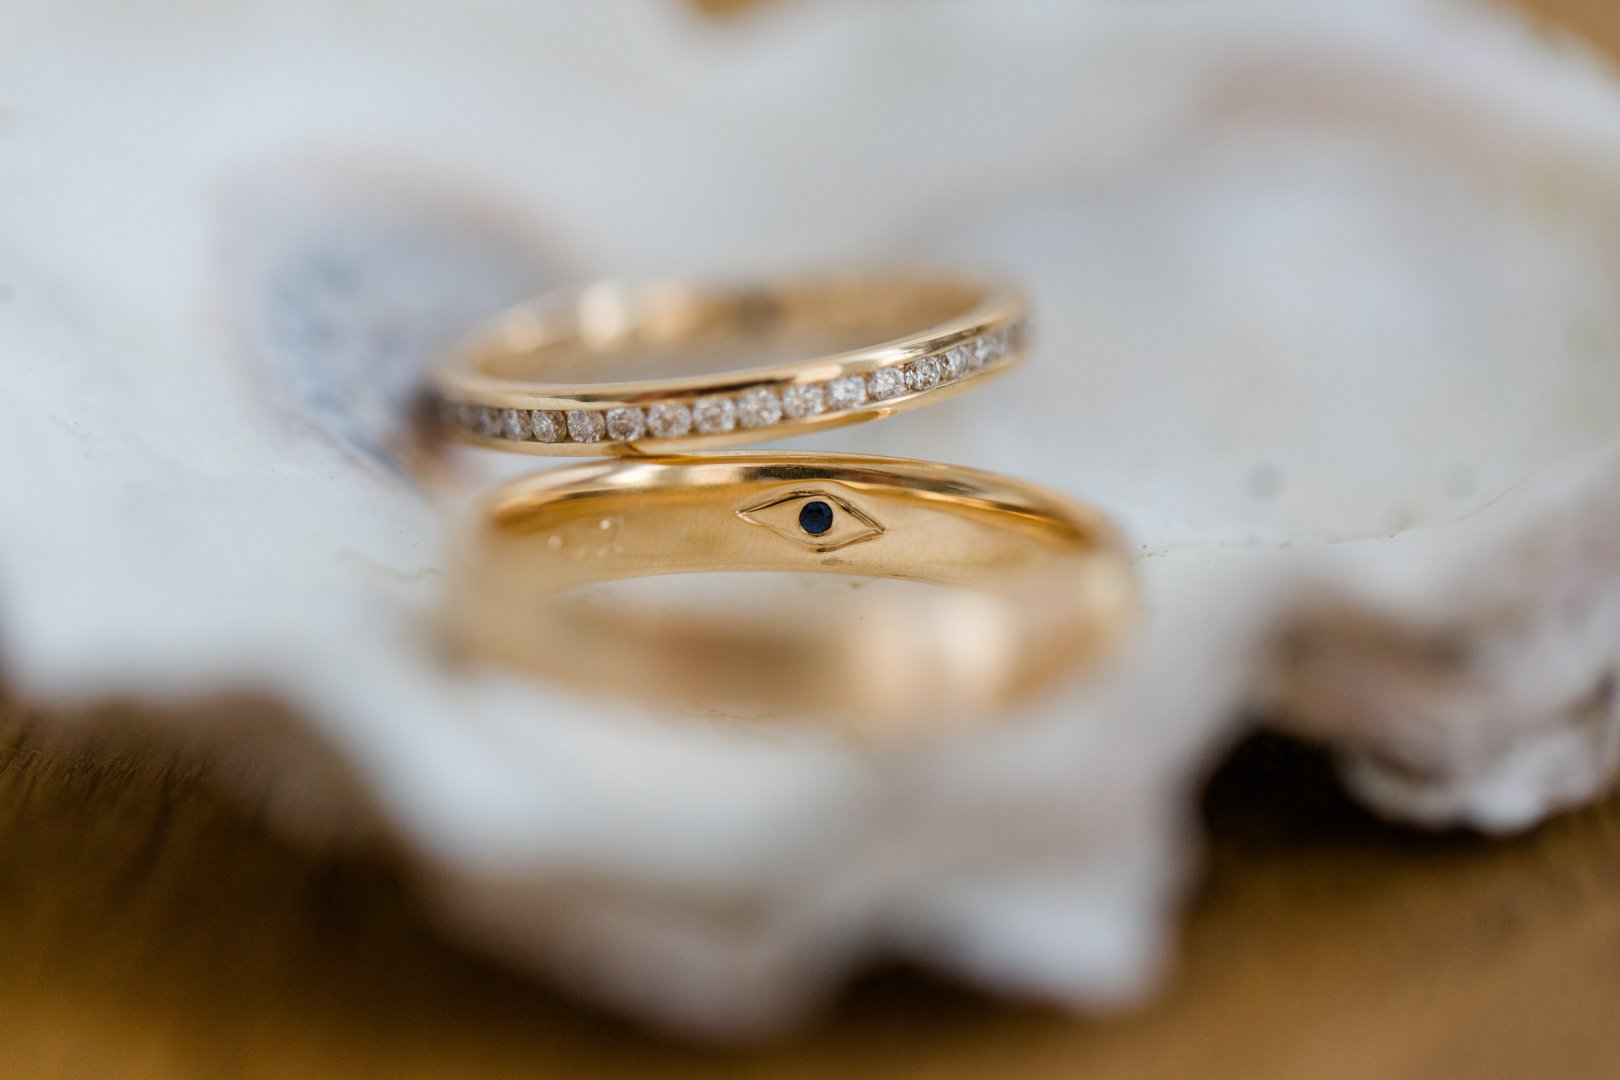 Photograph Wedding ring Ring Wedding ceremony supply Fashion accessory Close-up Jewellery Body jewelry Engagement ring Metal Macro photography Photography Silver Engagement Pearl Gold Gemstone Diamond Ear